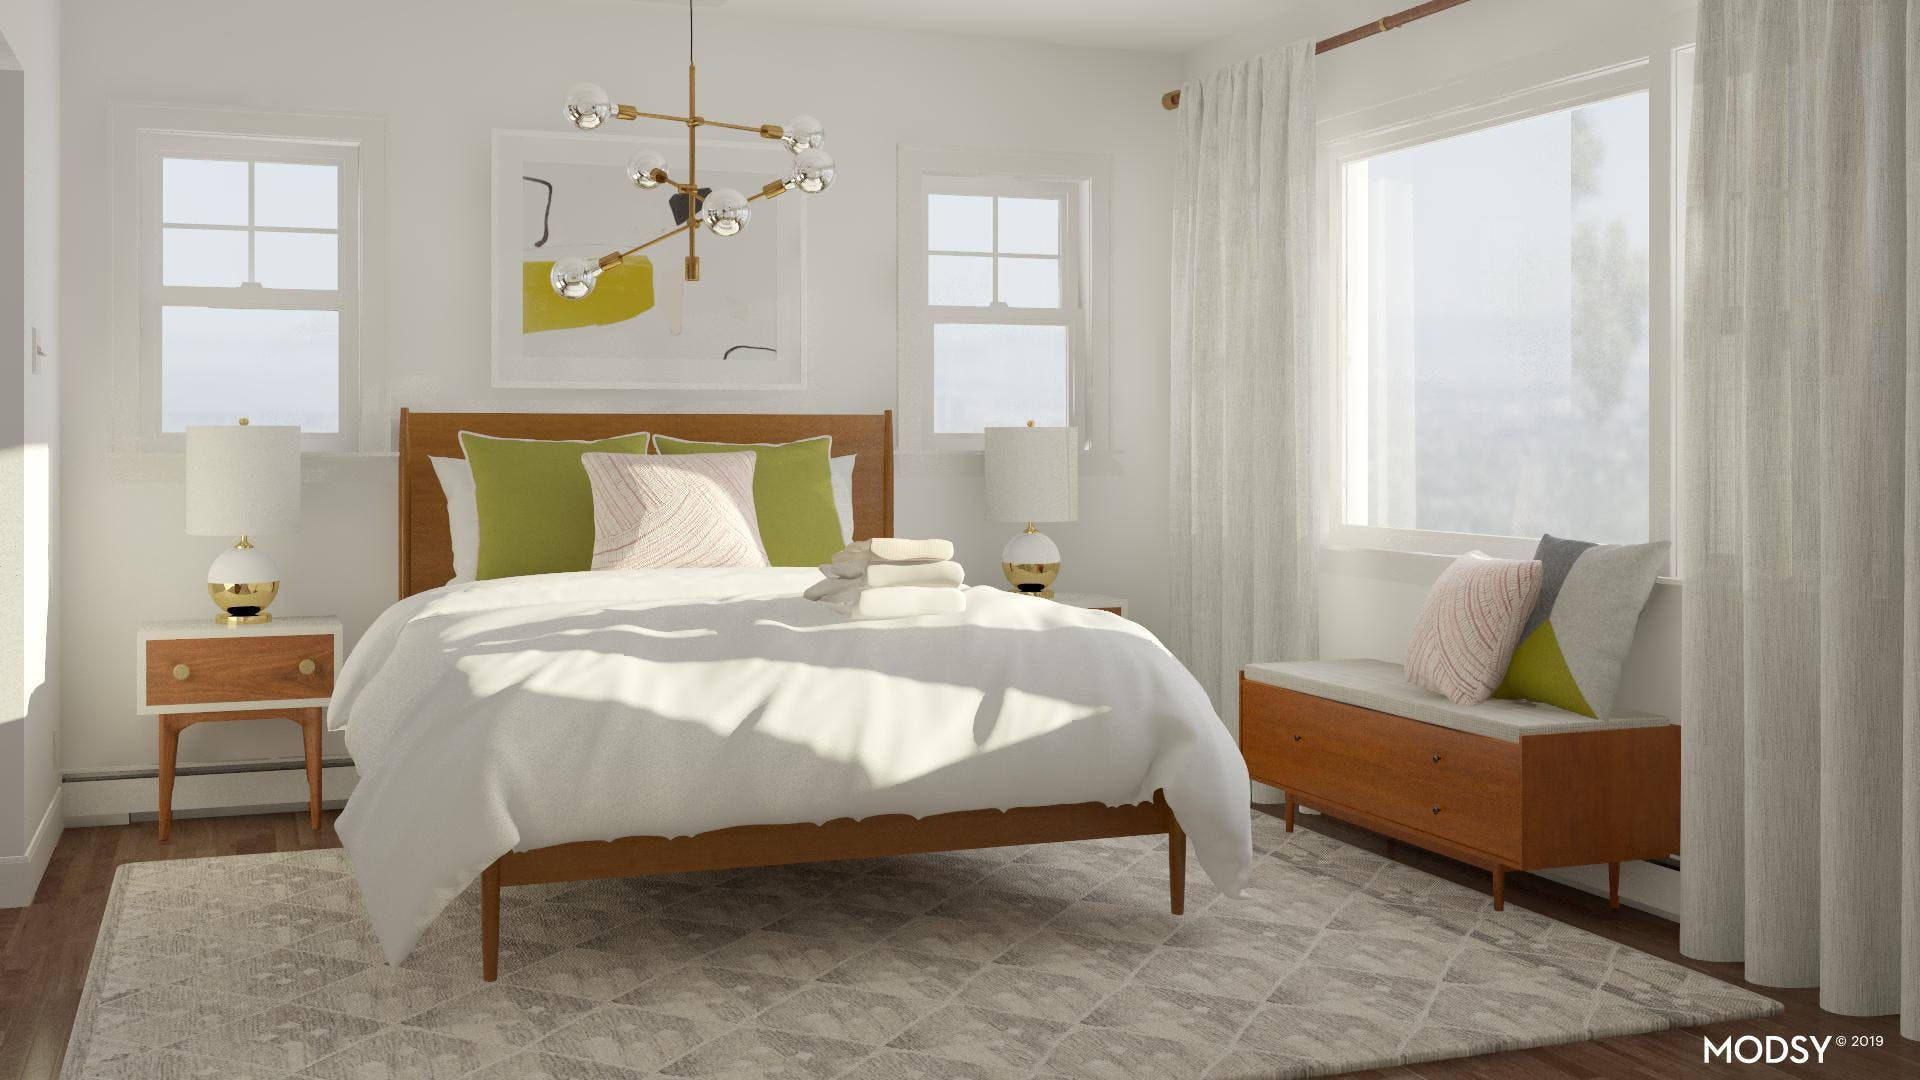 A Bright And Modern Bedroom